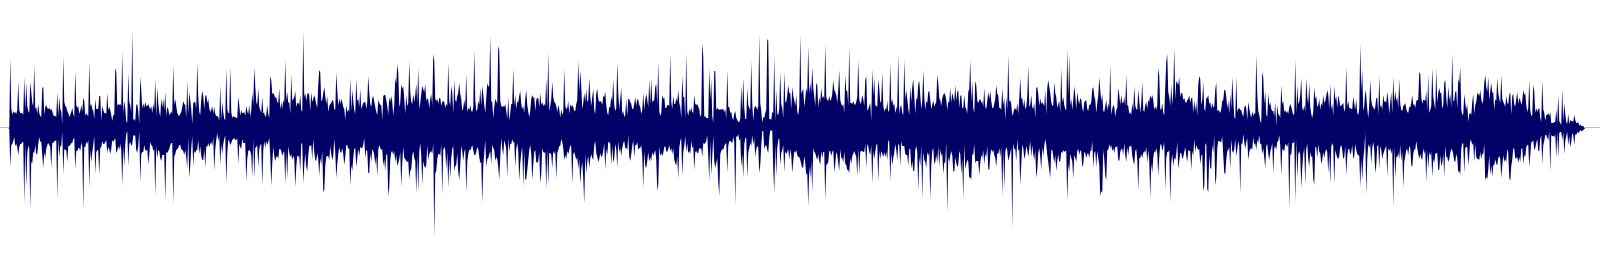 waveform of track #152661